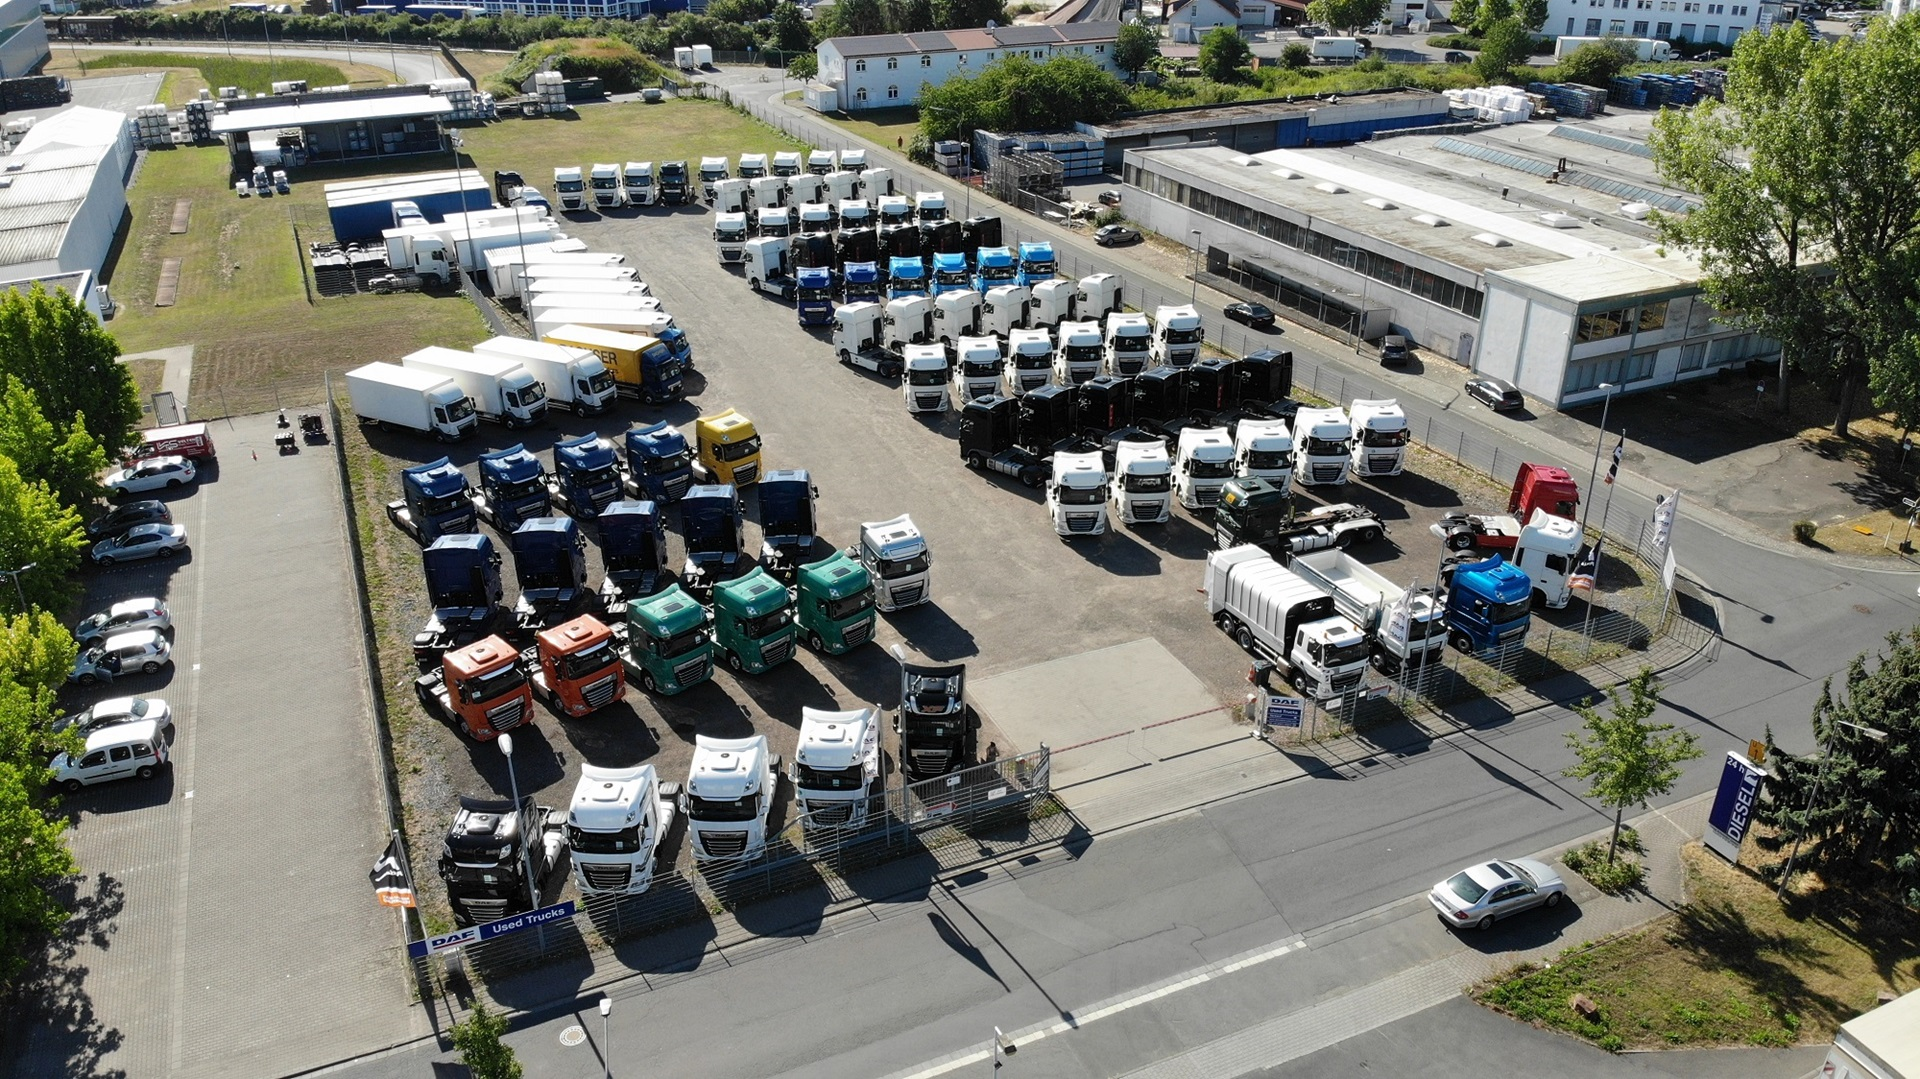 DAF-used-trucks-retail-center-Dieburg